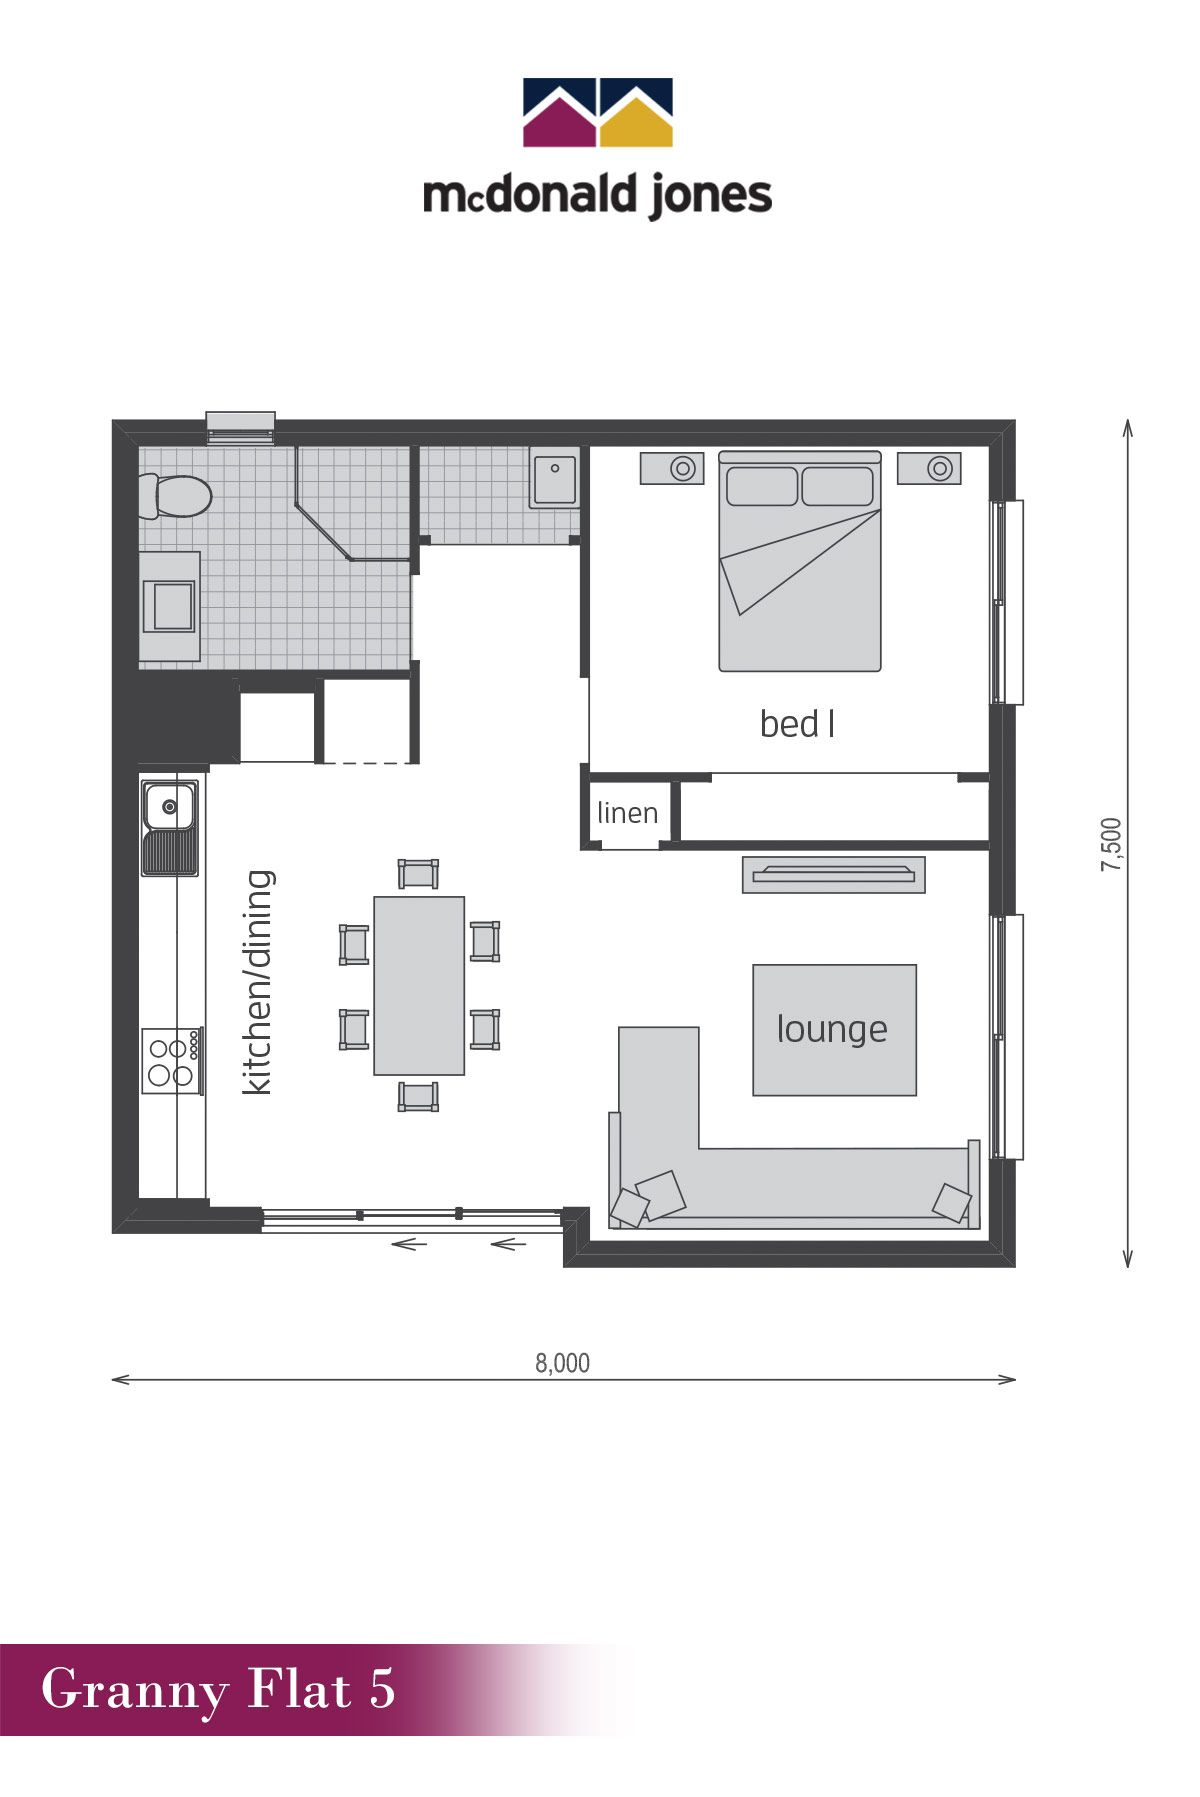 Granny flat 5 floor plan by mcdonald jones built as a separate residence to your home this granny flat combines a comfortable and luxurious accommodation